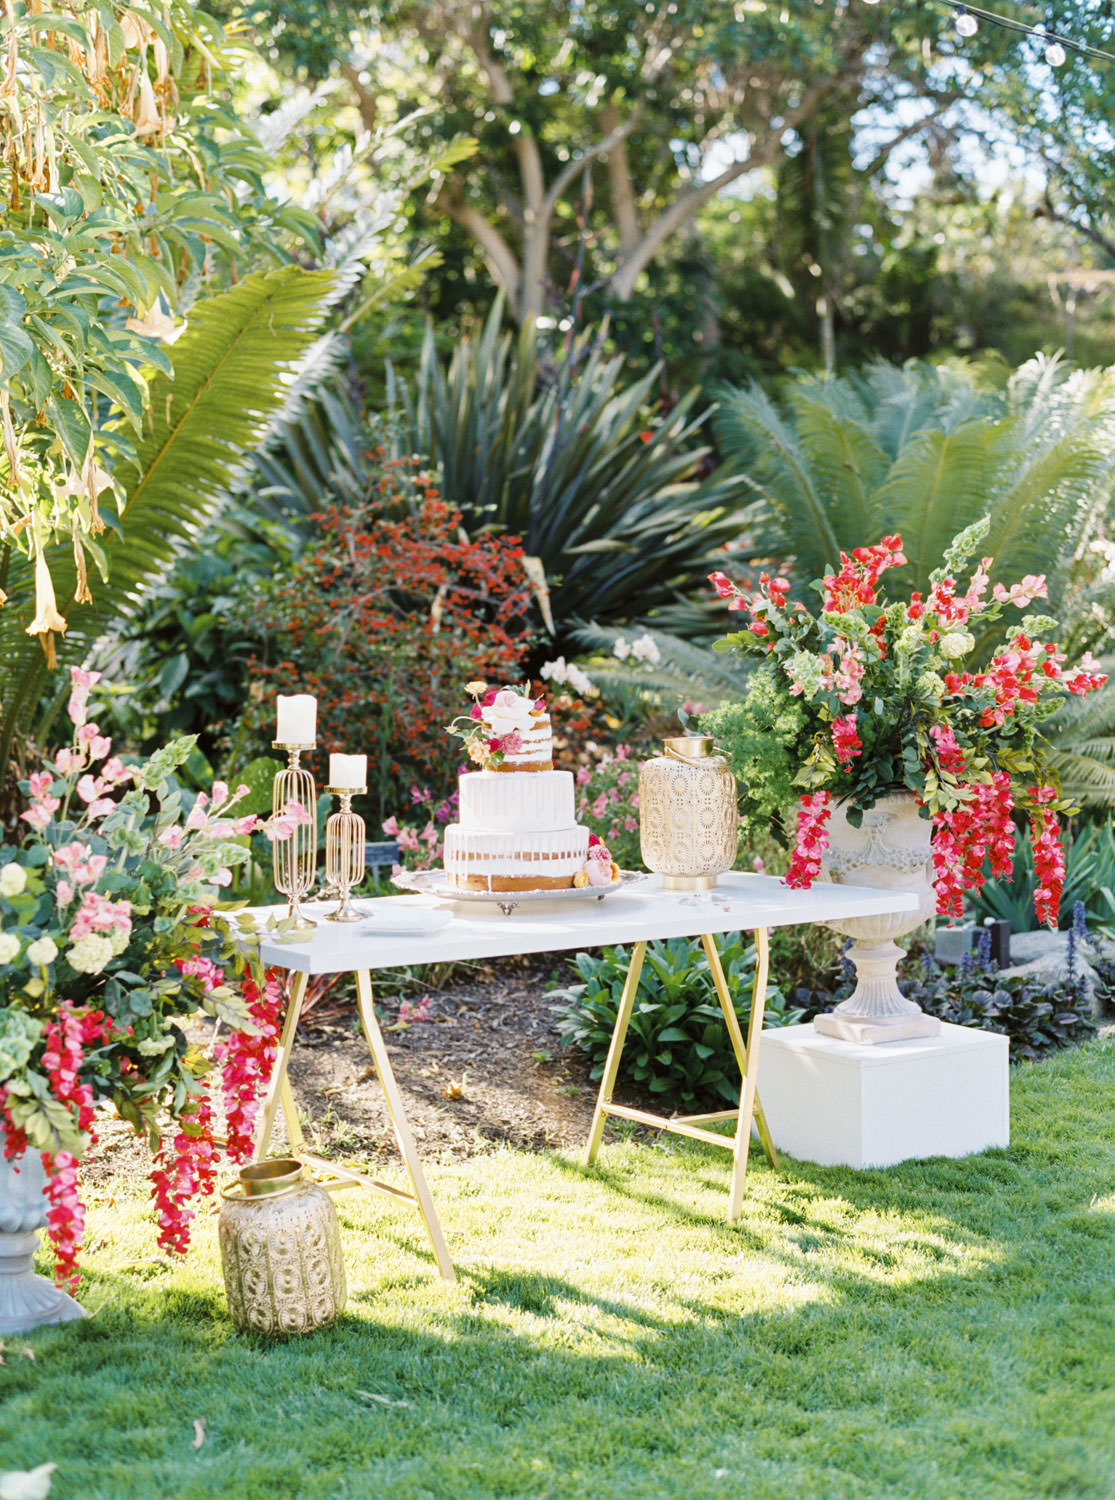 Wedding cake on white and gold table surrounded by floral arrangements with bougainvillea, Cavin Elizabeth Photography